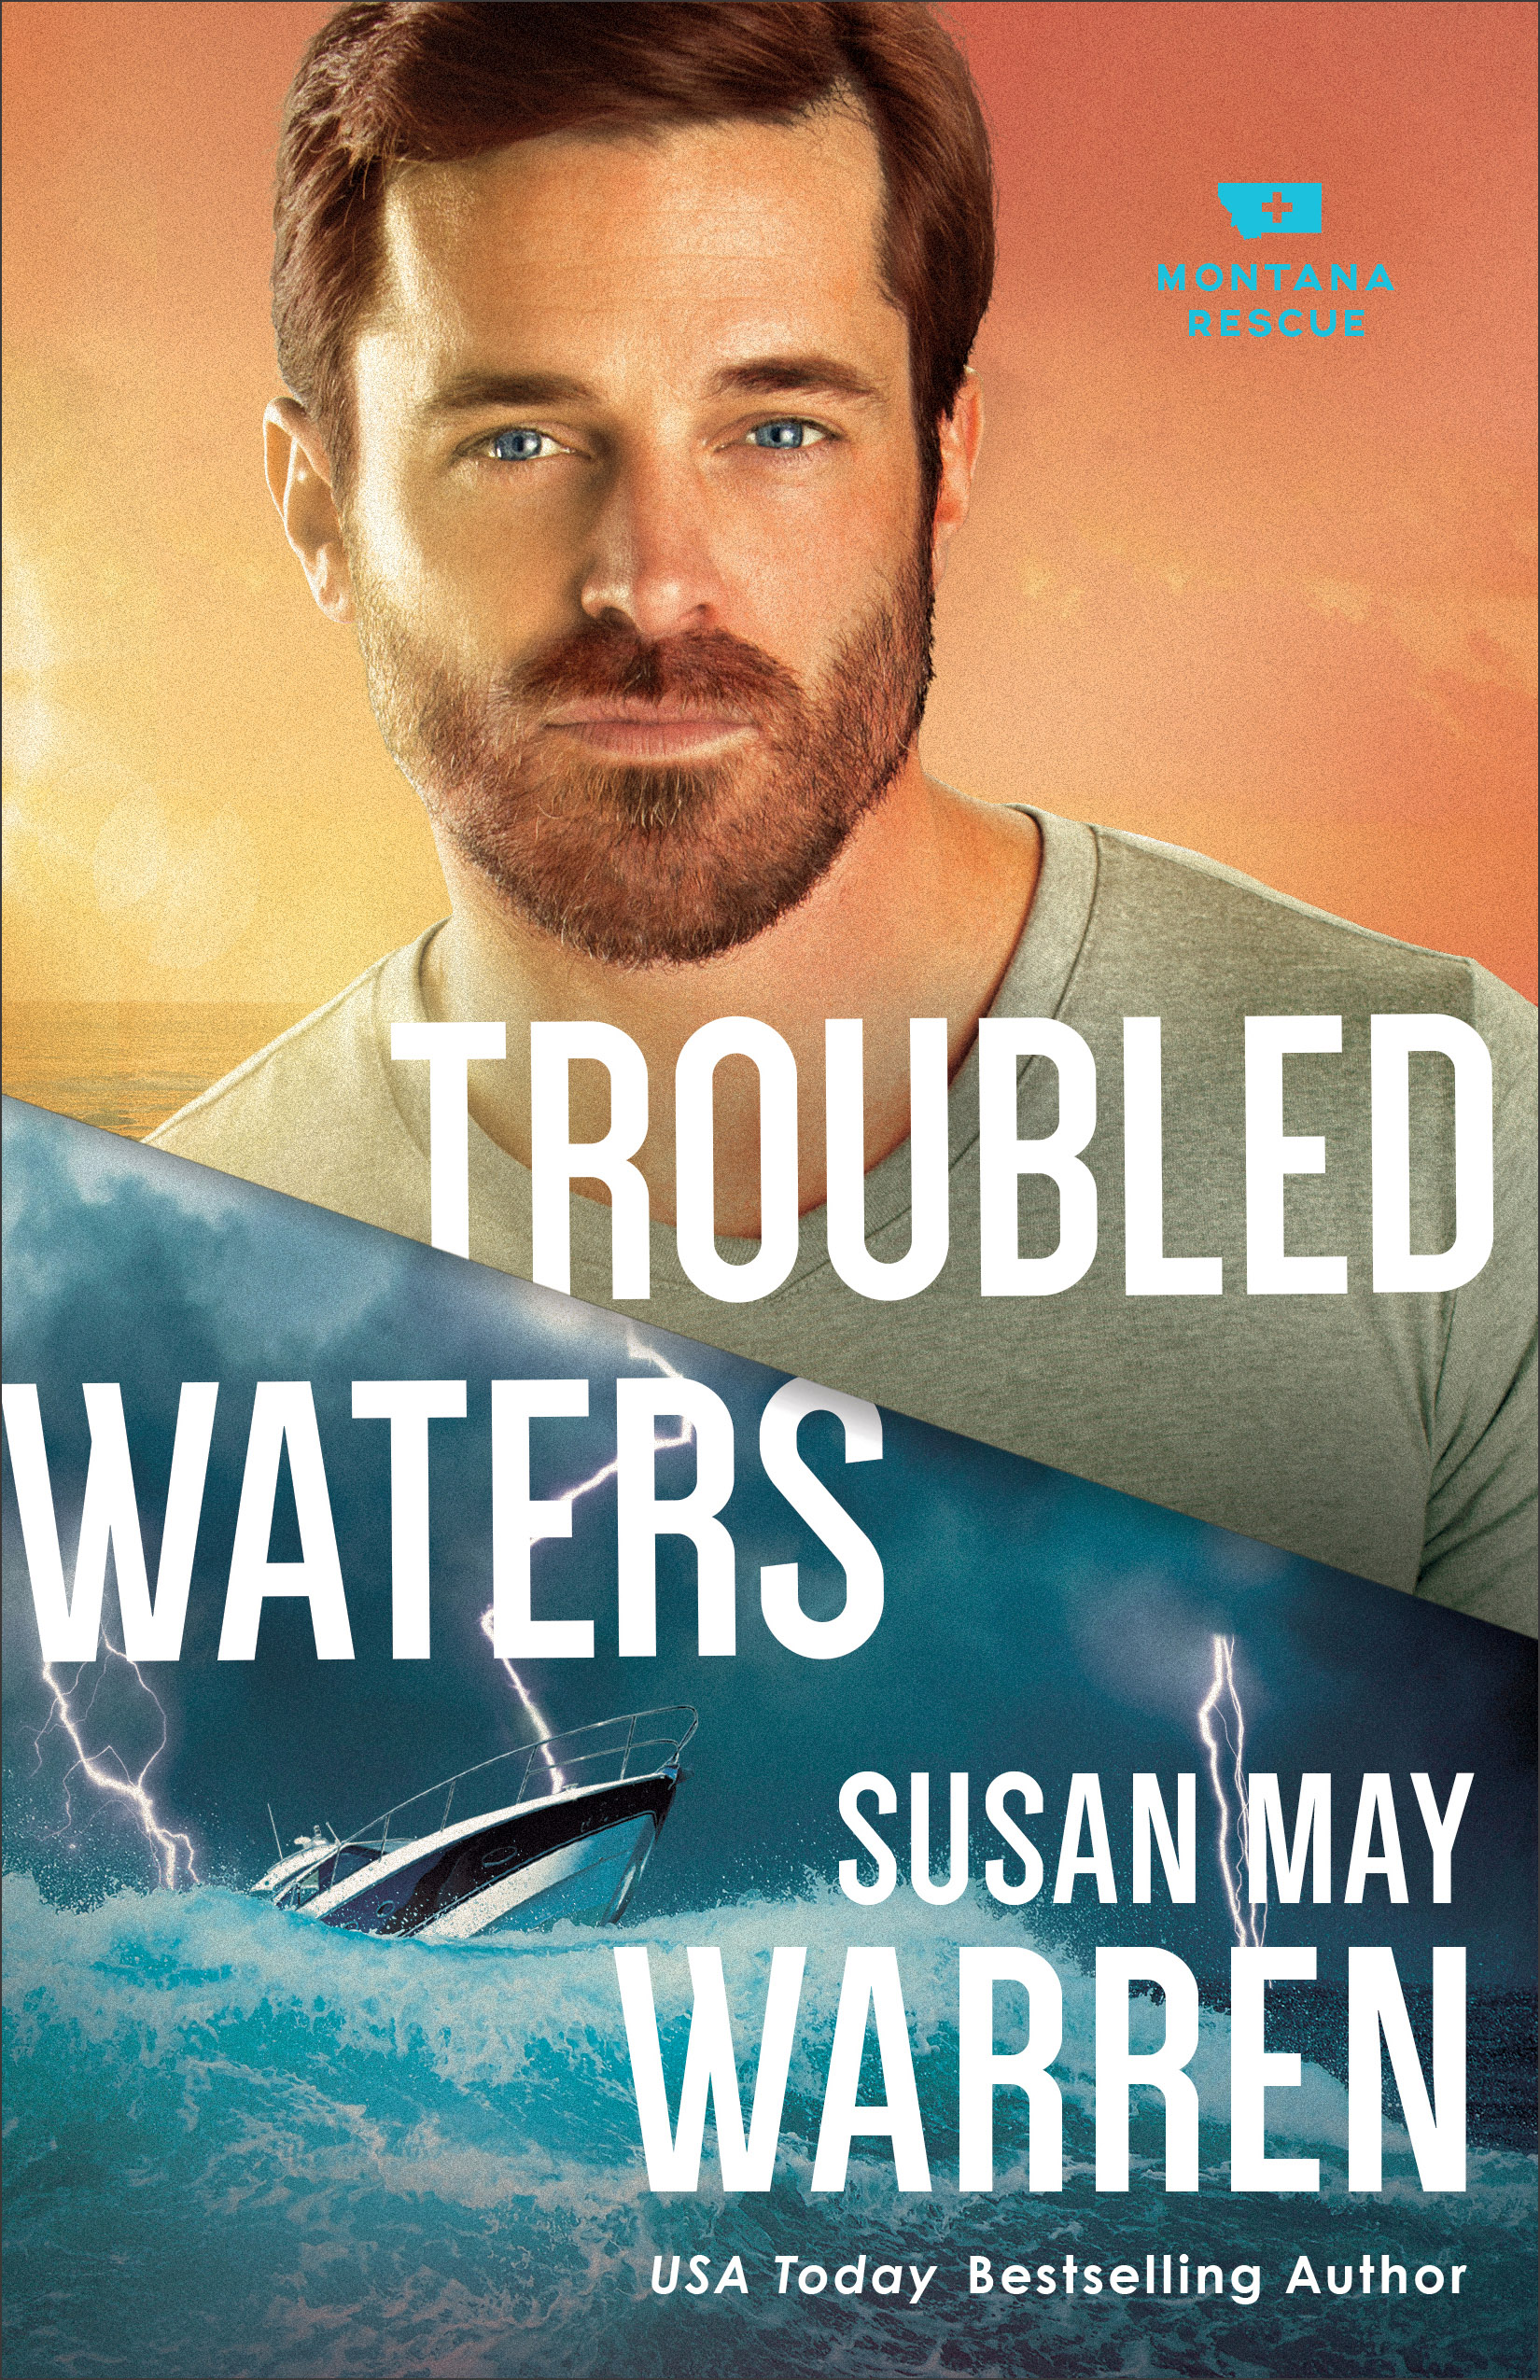 Book review of Troubled Waters by Susan May Warren (Revell) by papertapepins